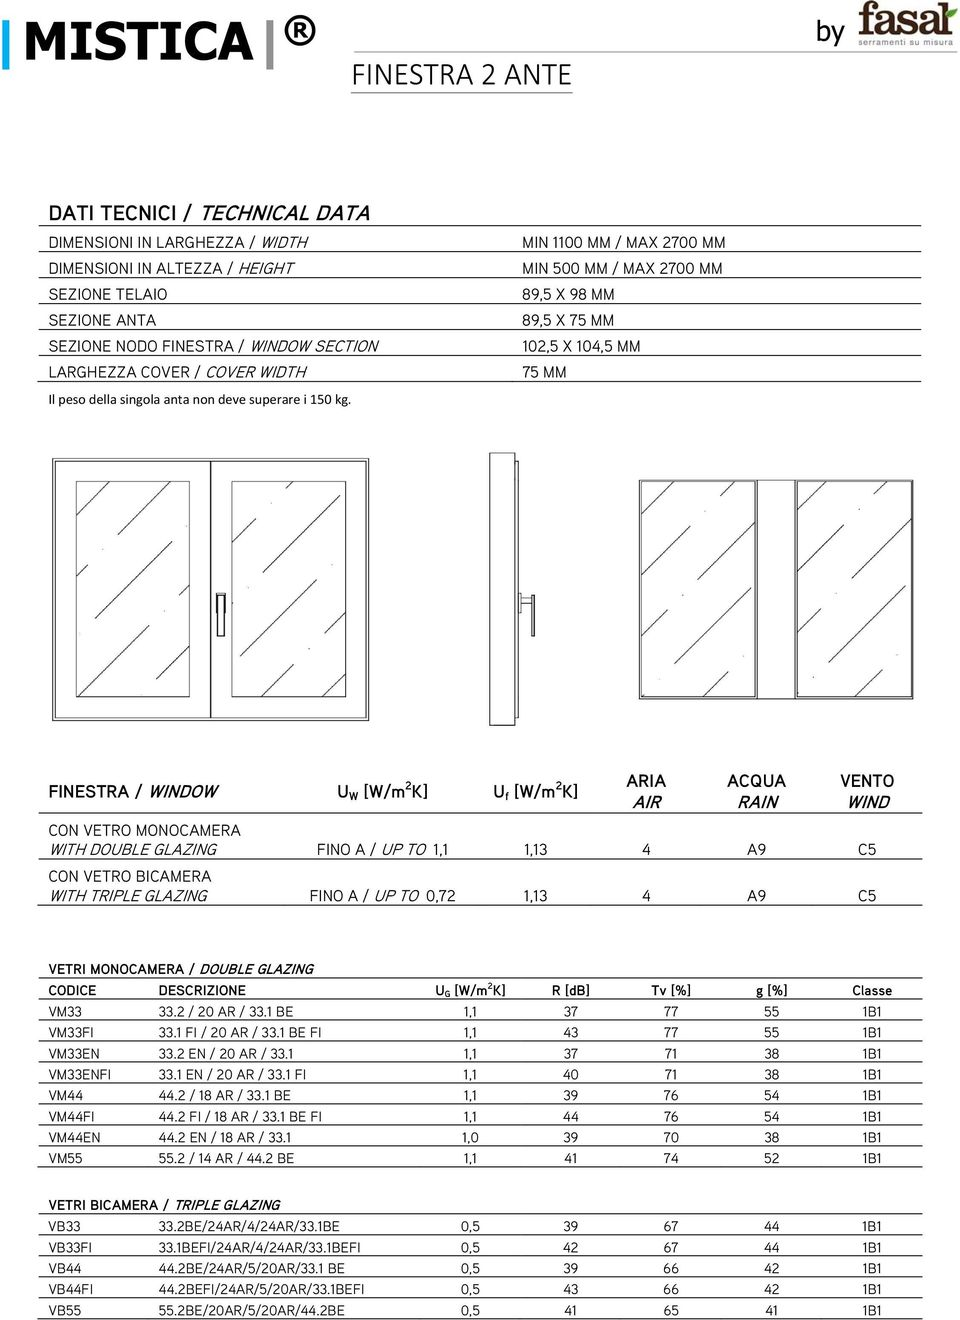 K] WITH DOUBLE GLAZING FINO A / UP TO 1,1 1,13 4 A9